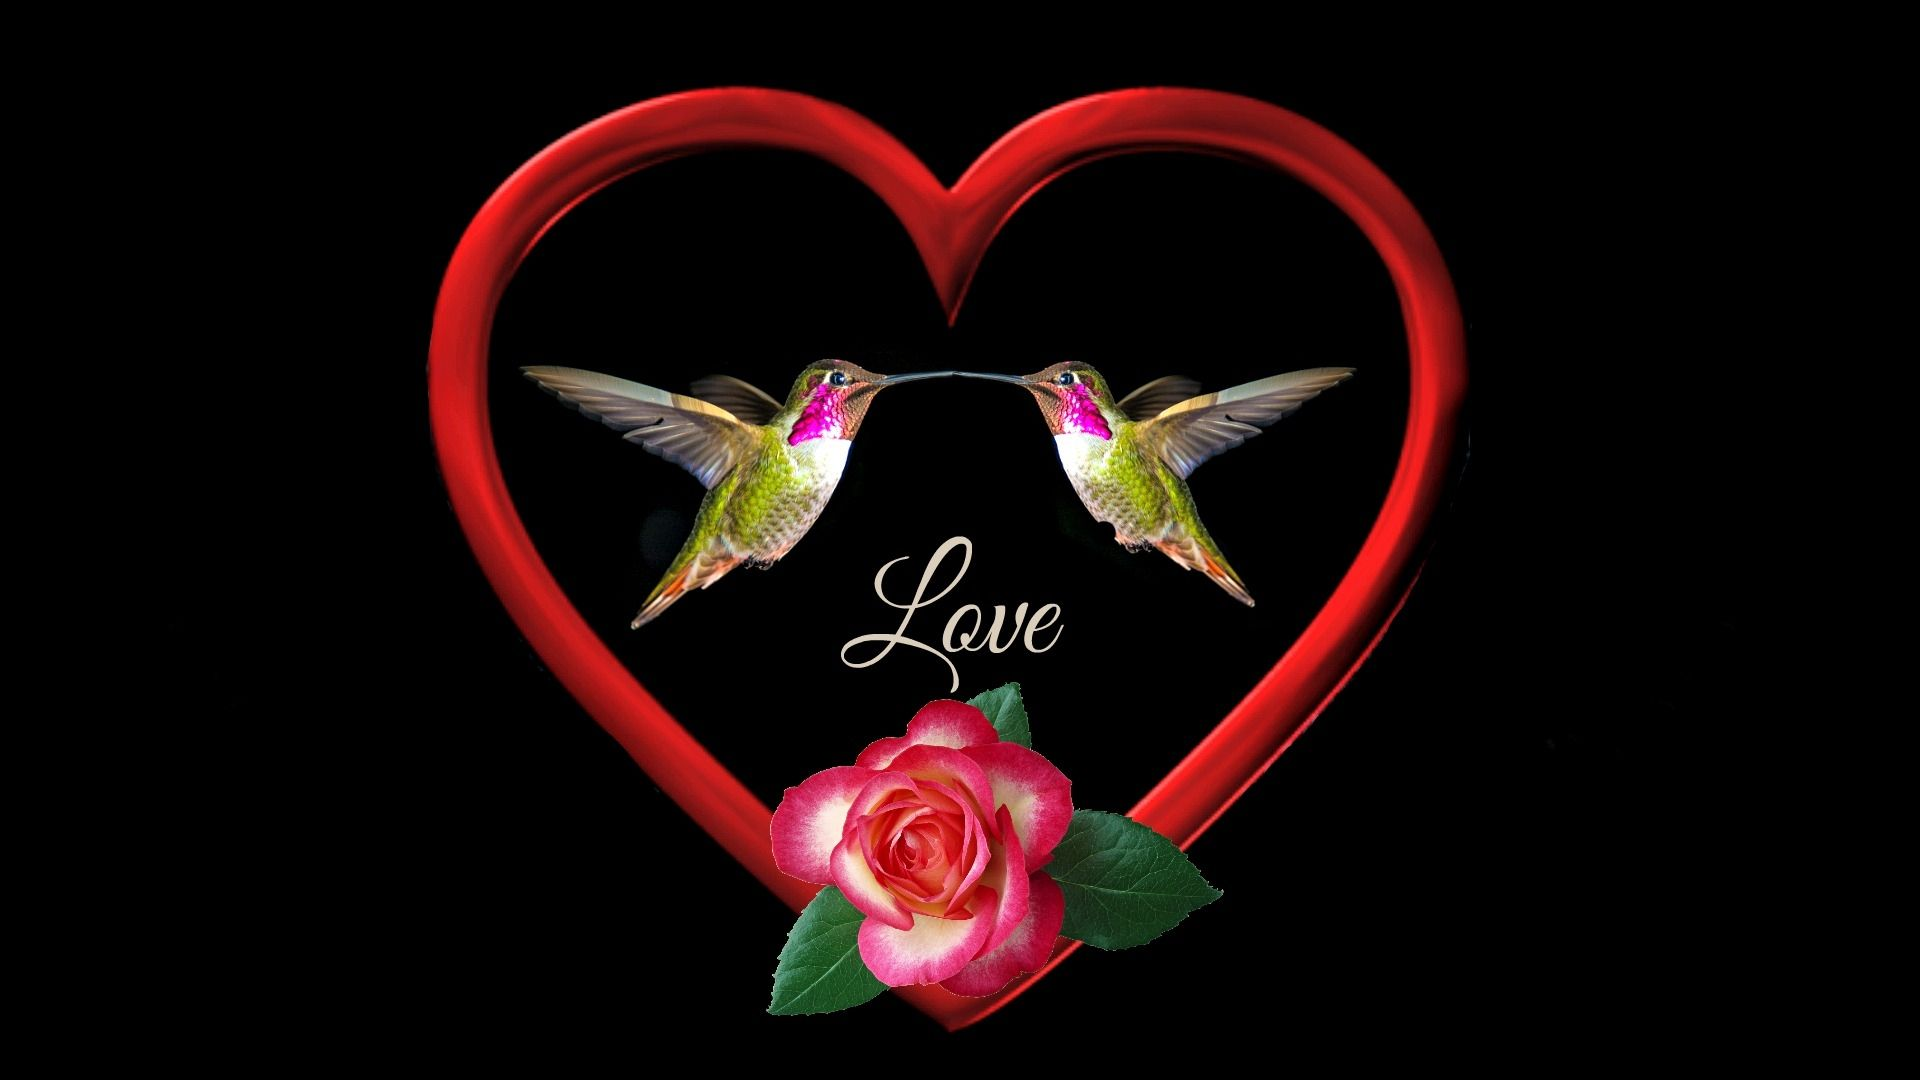 wallpapers designs: romantic cute love images 800×600 new love